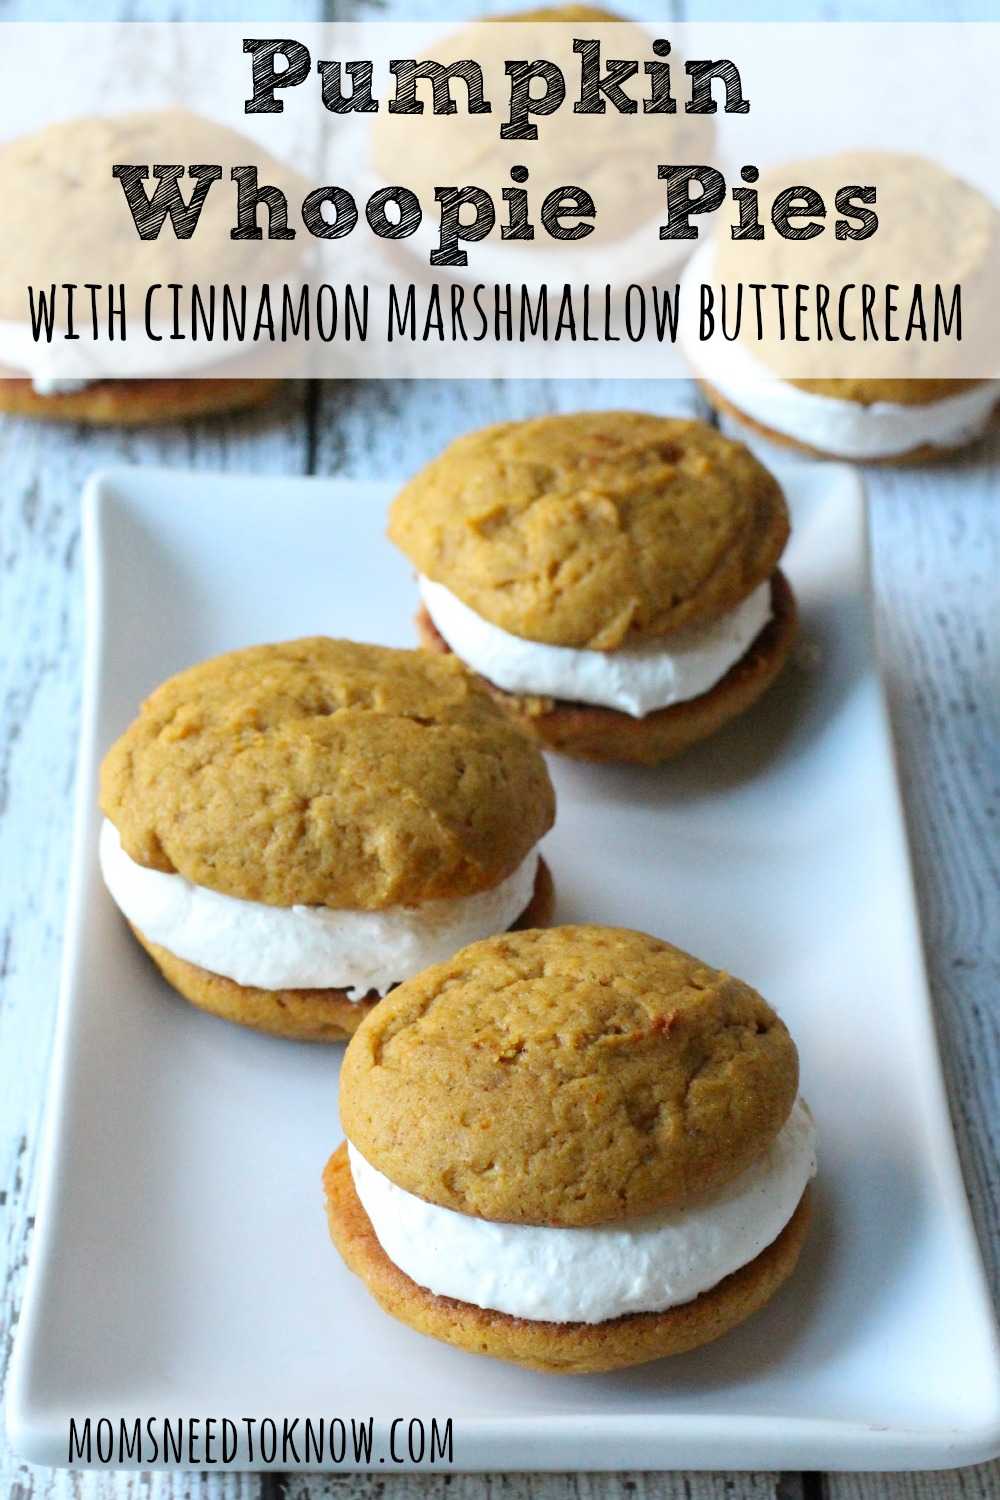 Pumpkin season may be winding down, but in my house, it is ALWAYS pumpkin season and these pumpkin whoopie pies are sure to be a hit with your family!